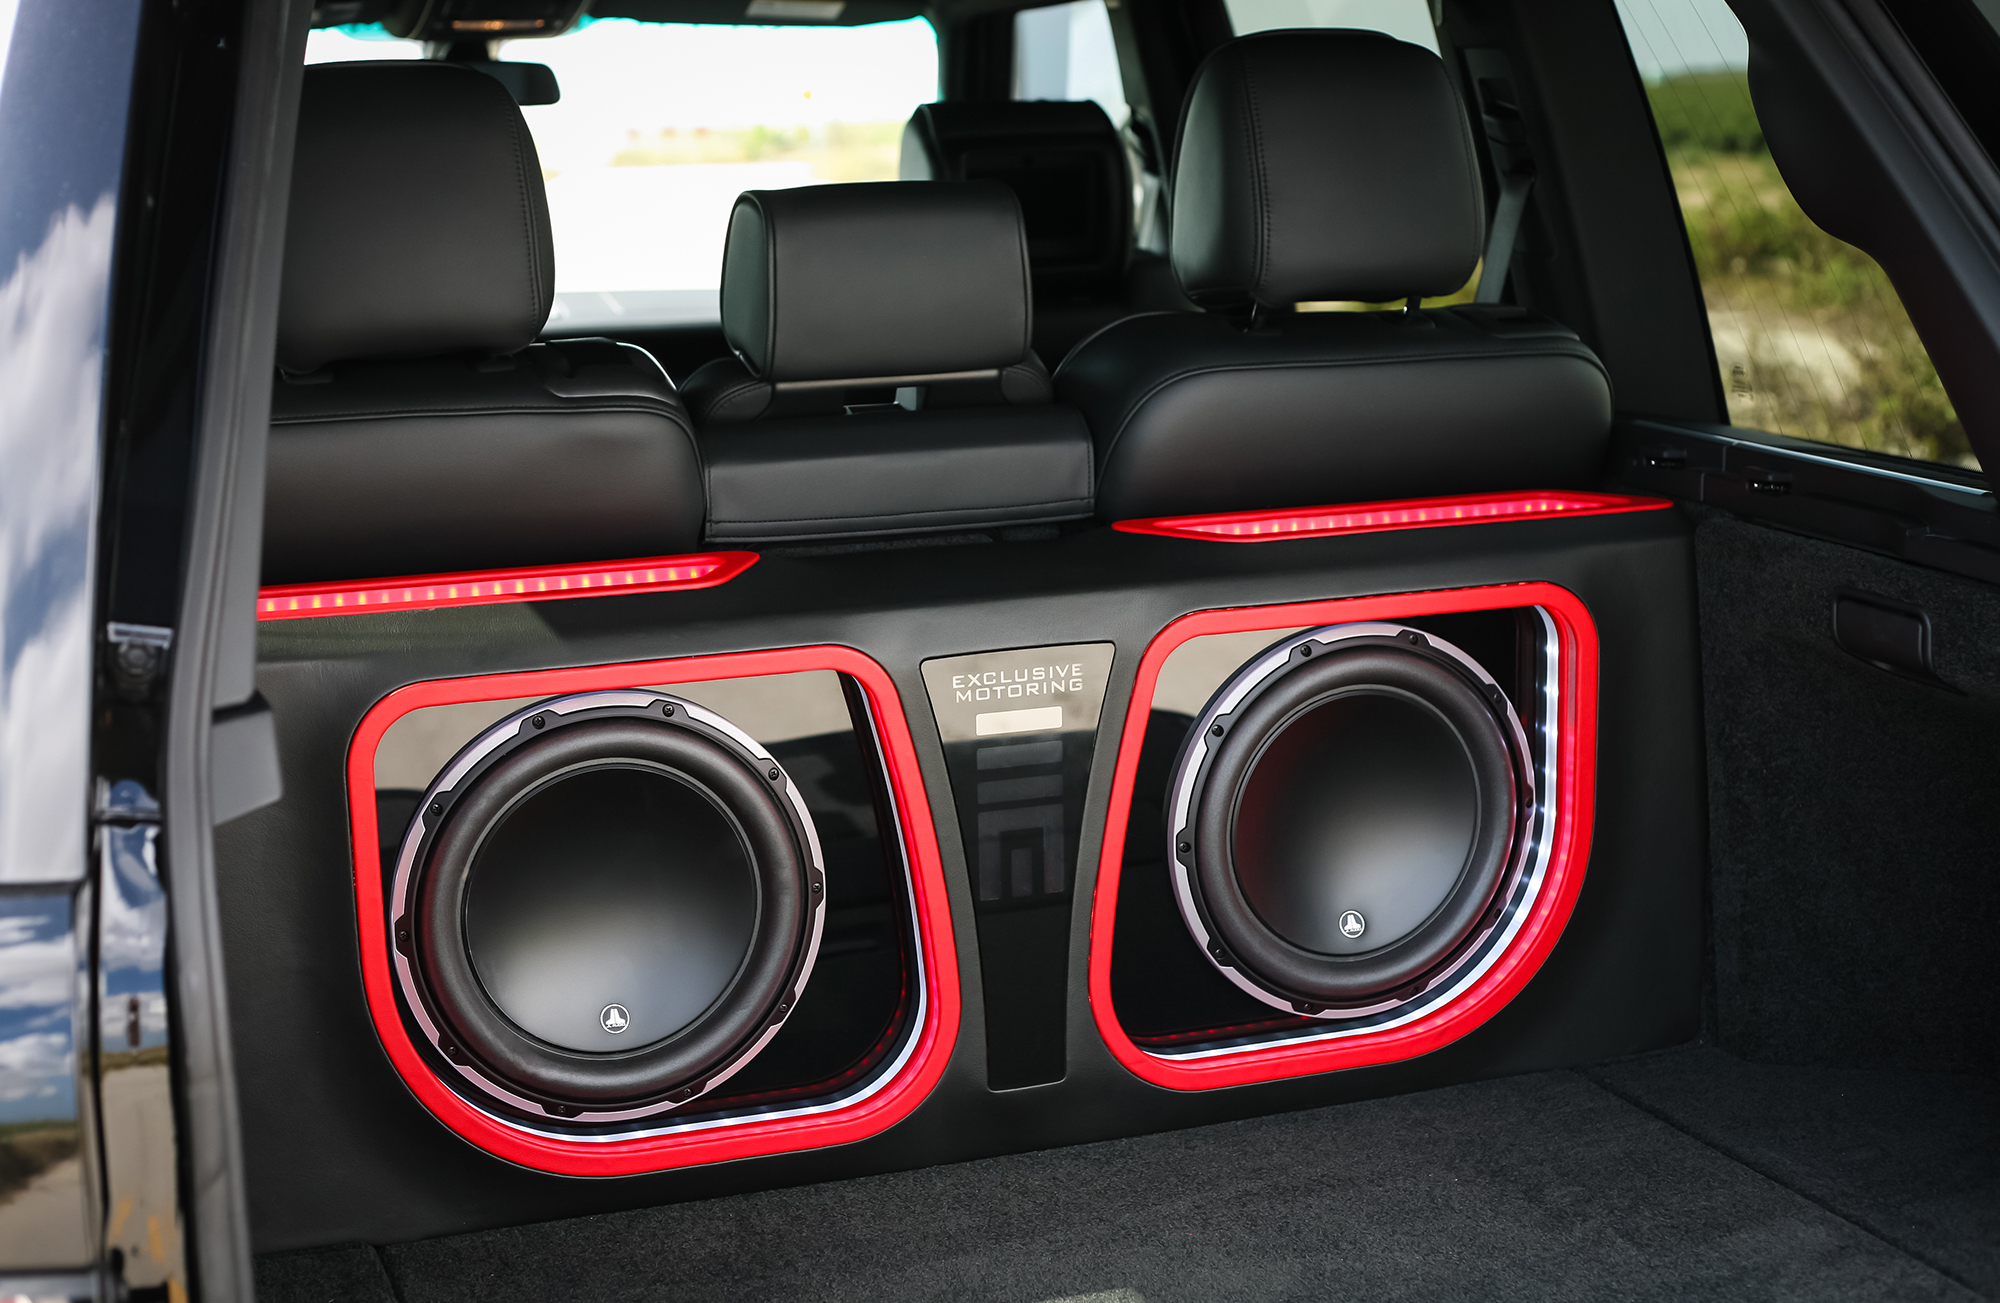 Range-Rover-2009-with-two-15-inch-JL-woofers (1).jpg